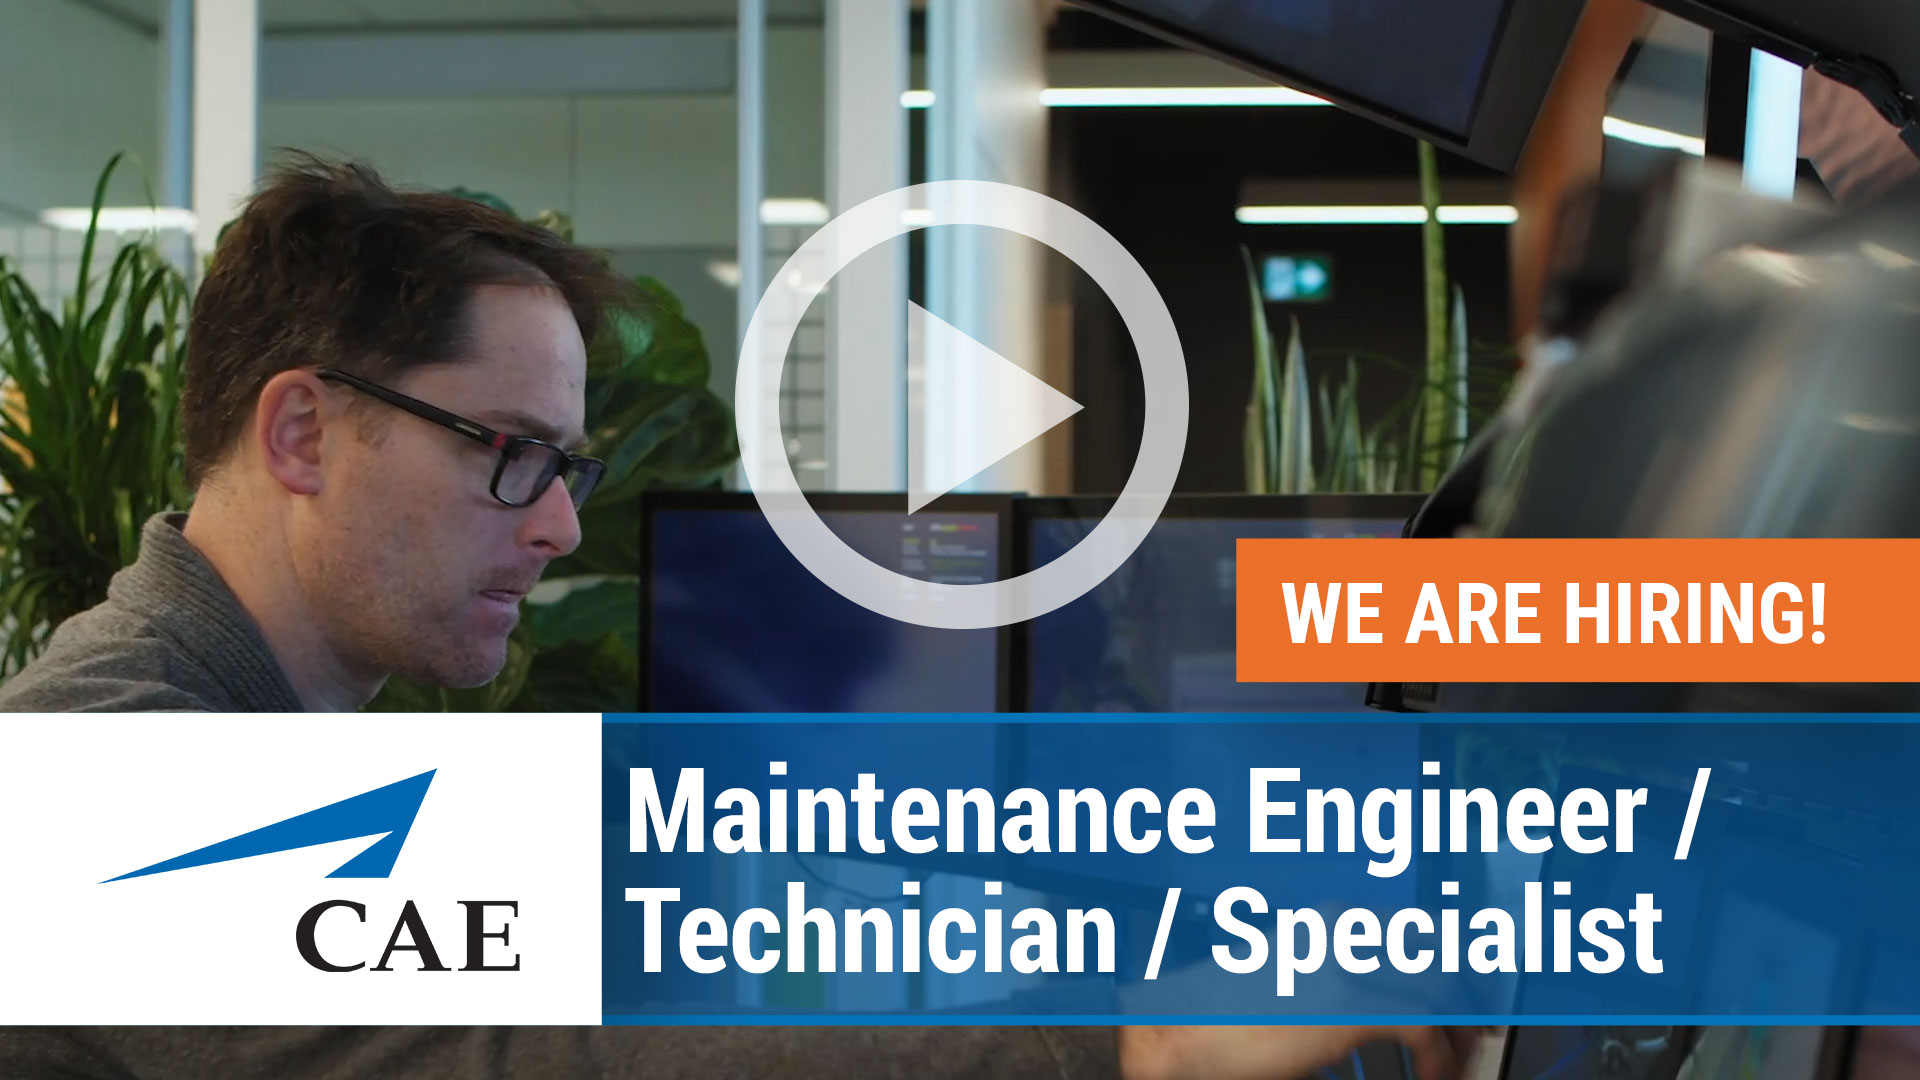 Watch our careers video for available job opening Maintenance Engineer_Technician_Specialist in Varies in Europe